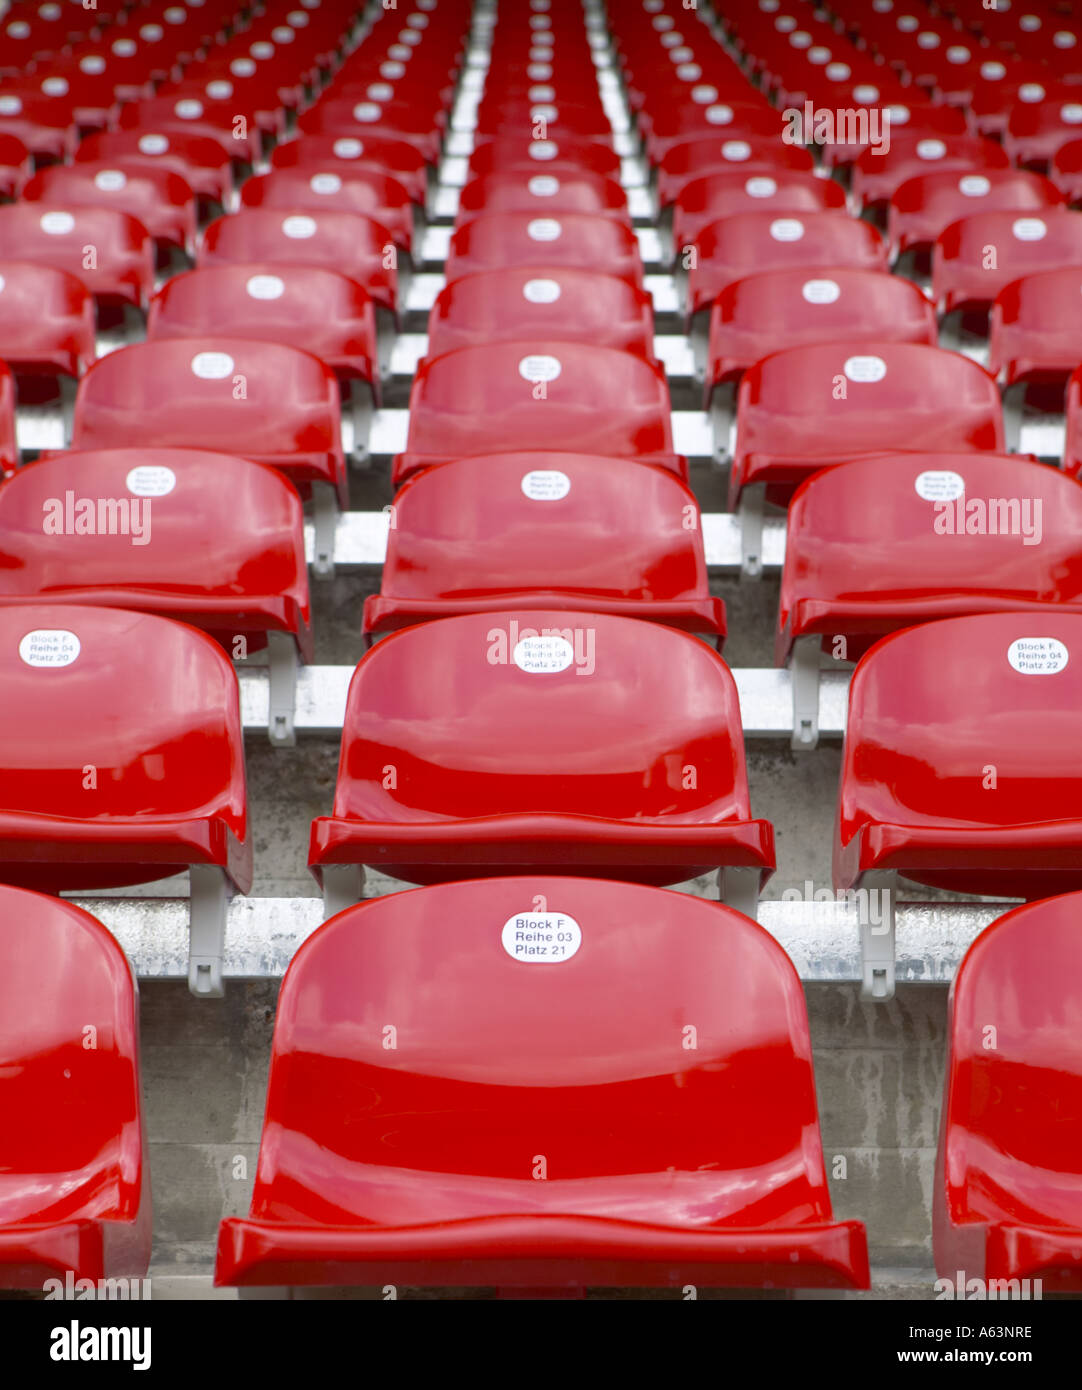 Low angle view of empty chairs at football stadium - Stock Image